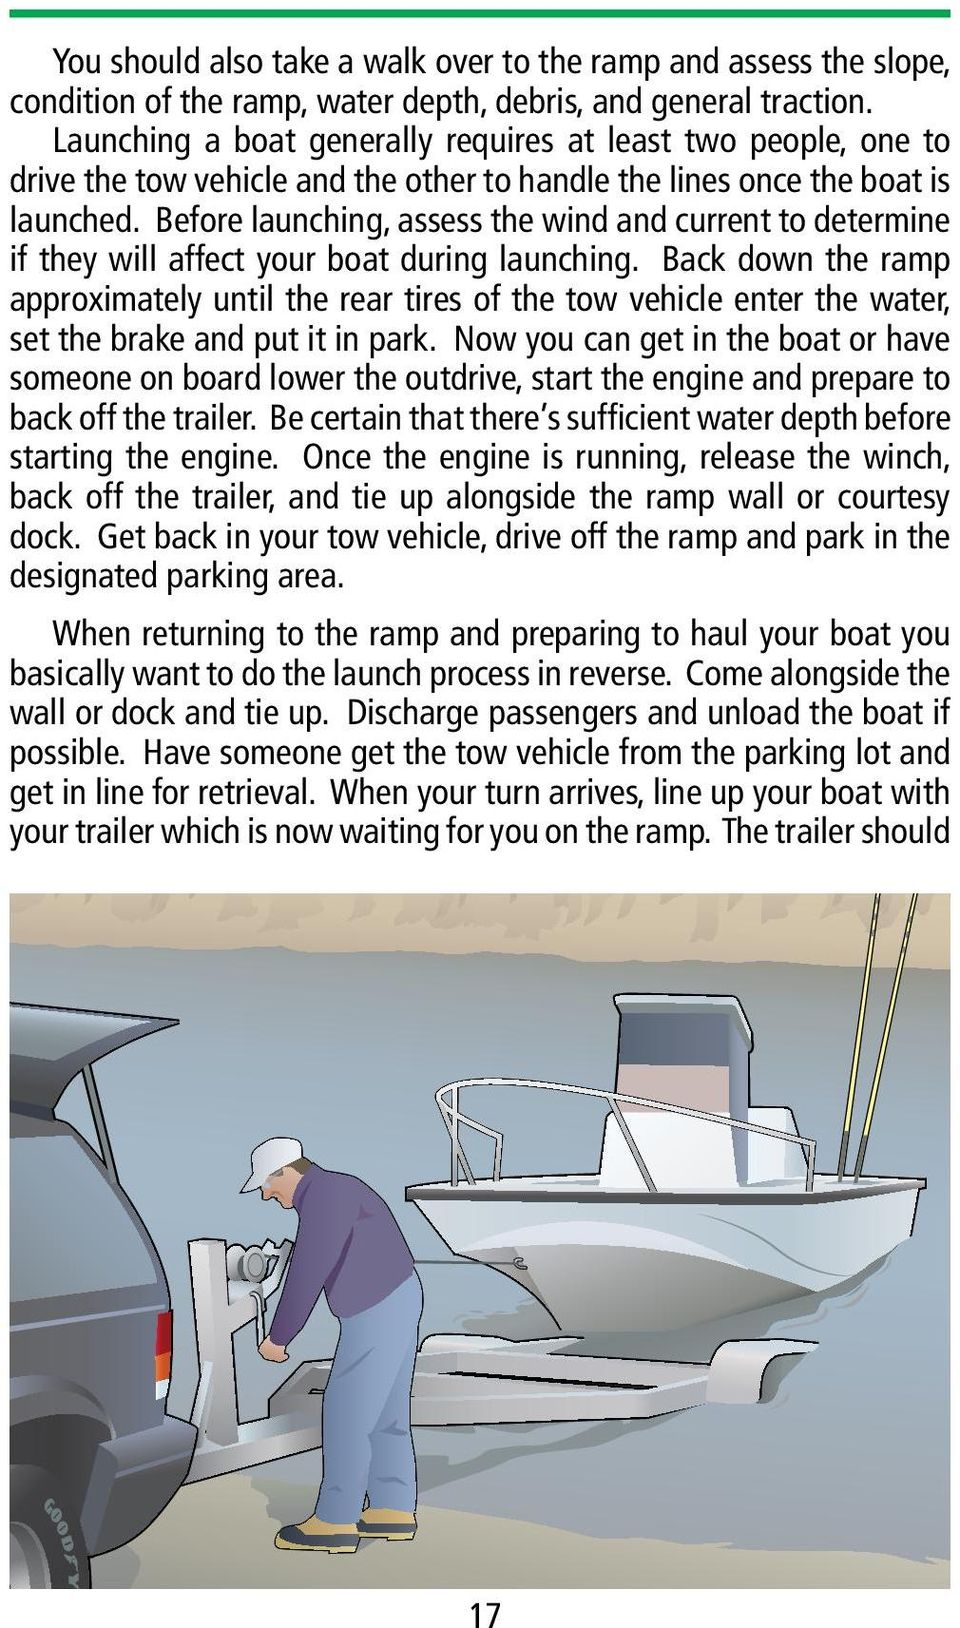 Before launching, assess the wind and current to determine if they will affect your boat during launching.